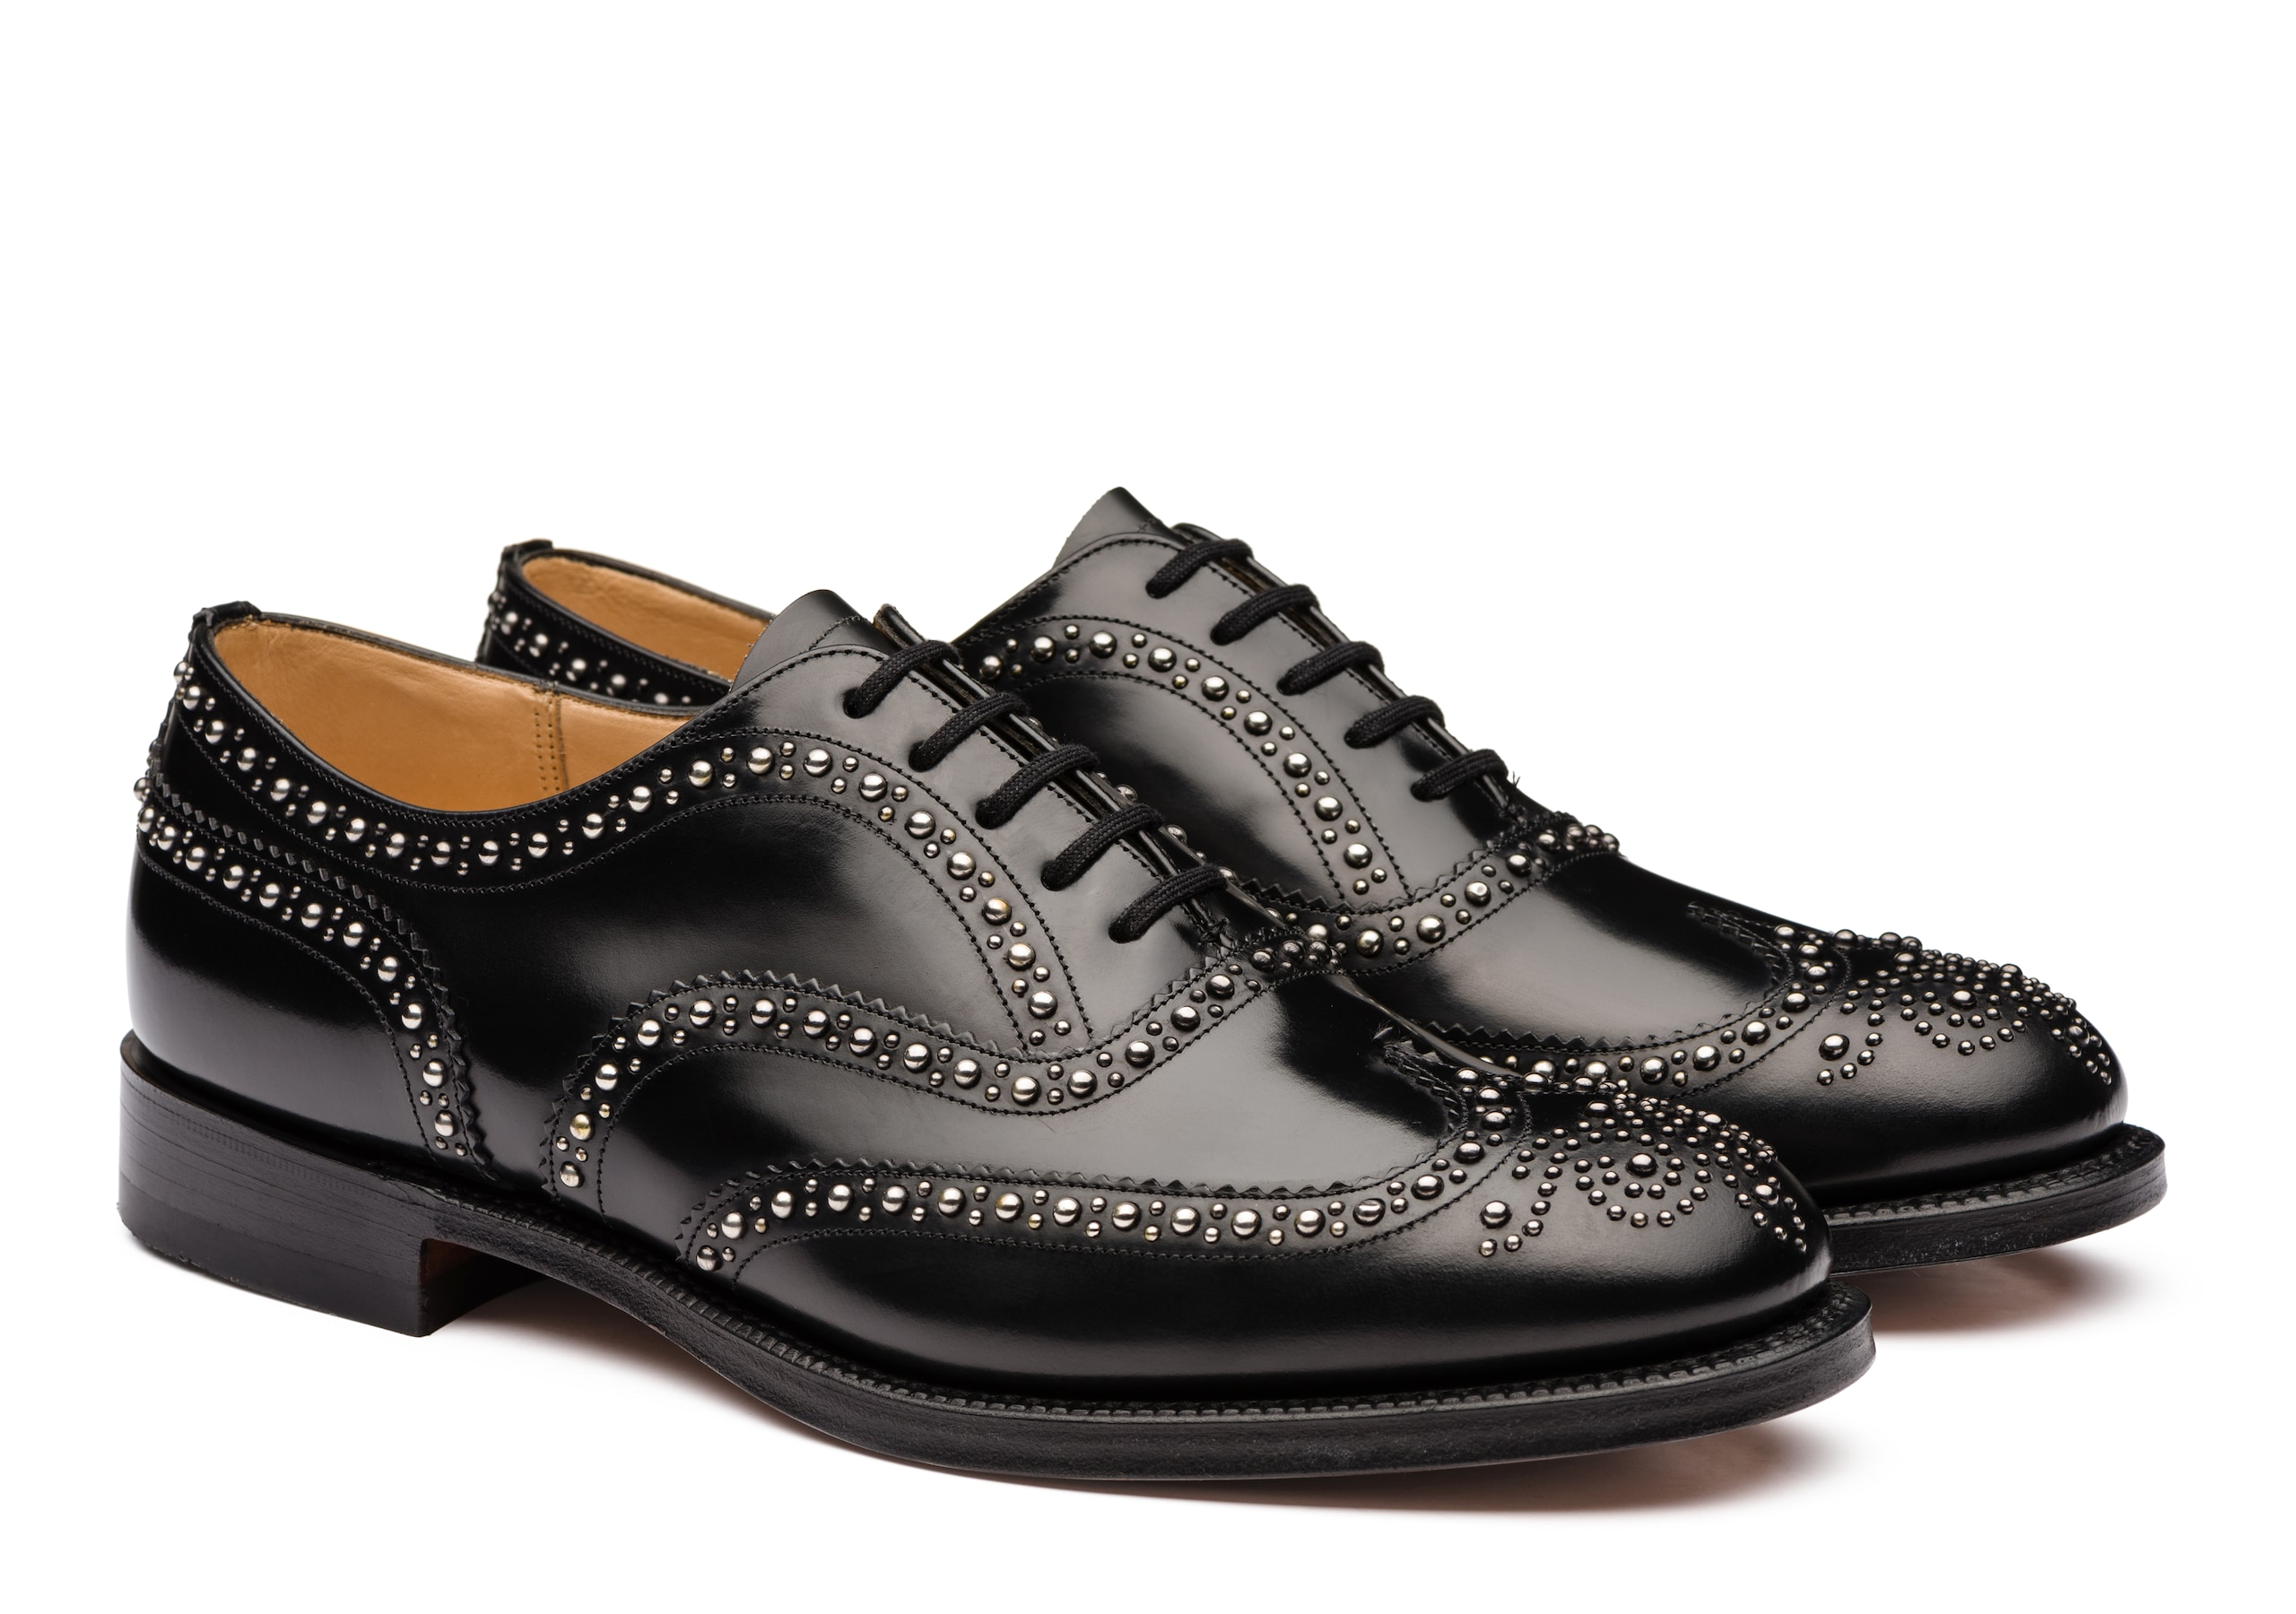 Burwood  2s Church's Oxford Brogue in Pelle di Vitello Spazzolato Borchia Nero